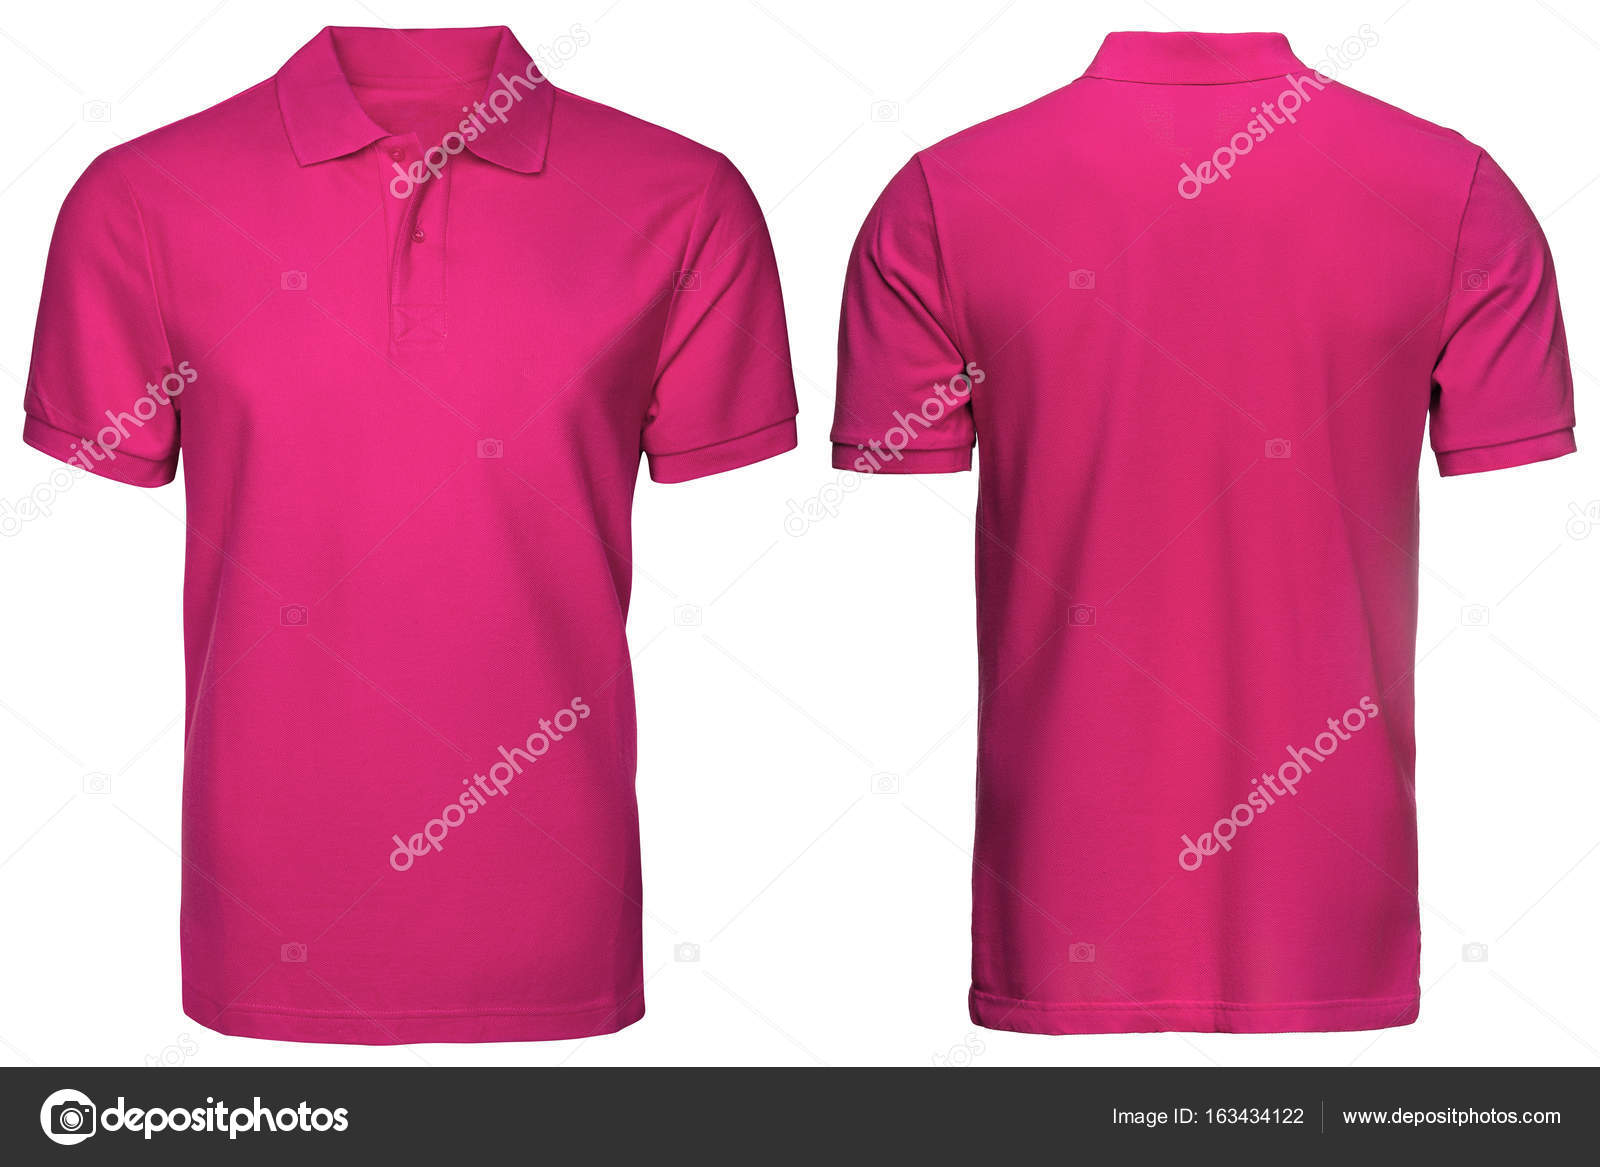 ec58d46ea78f2a Blank pink polo shirt, front and back view, isolated white background.  Design polo shirt, template and mockup for print.– stock image